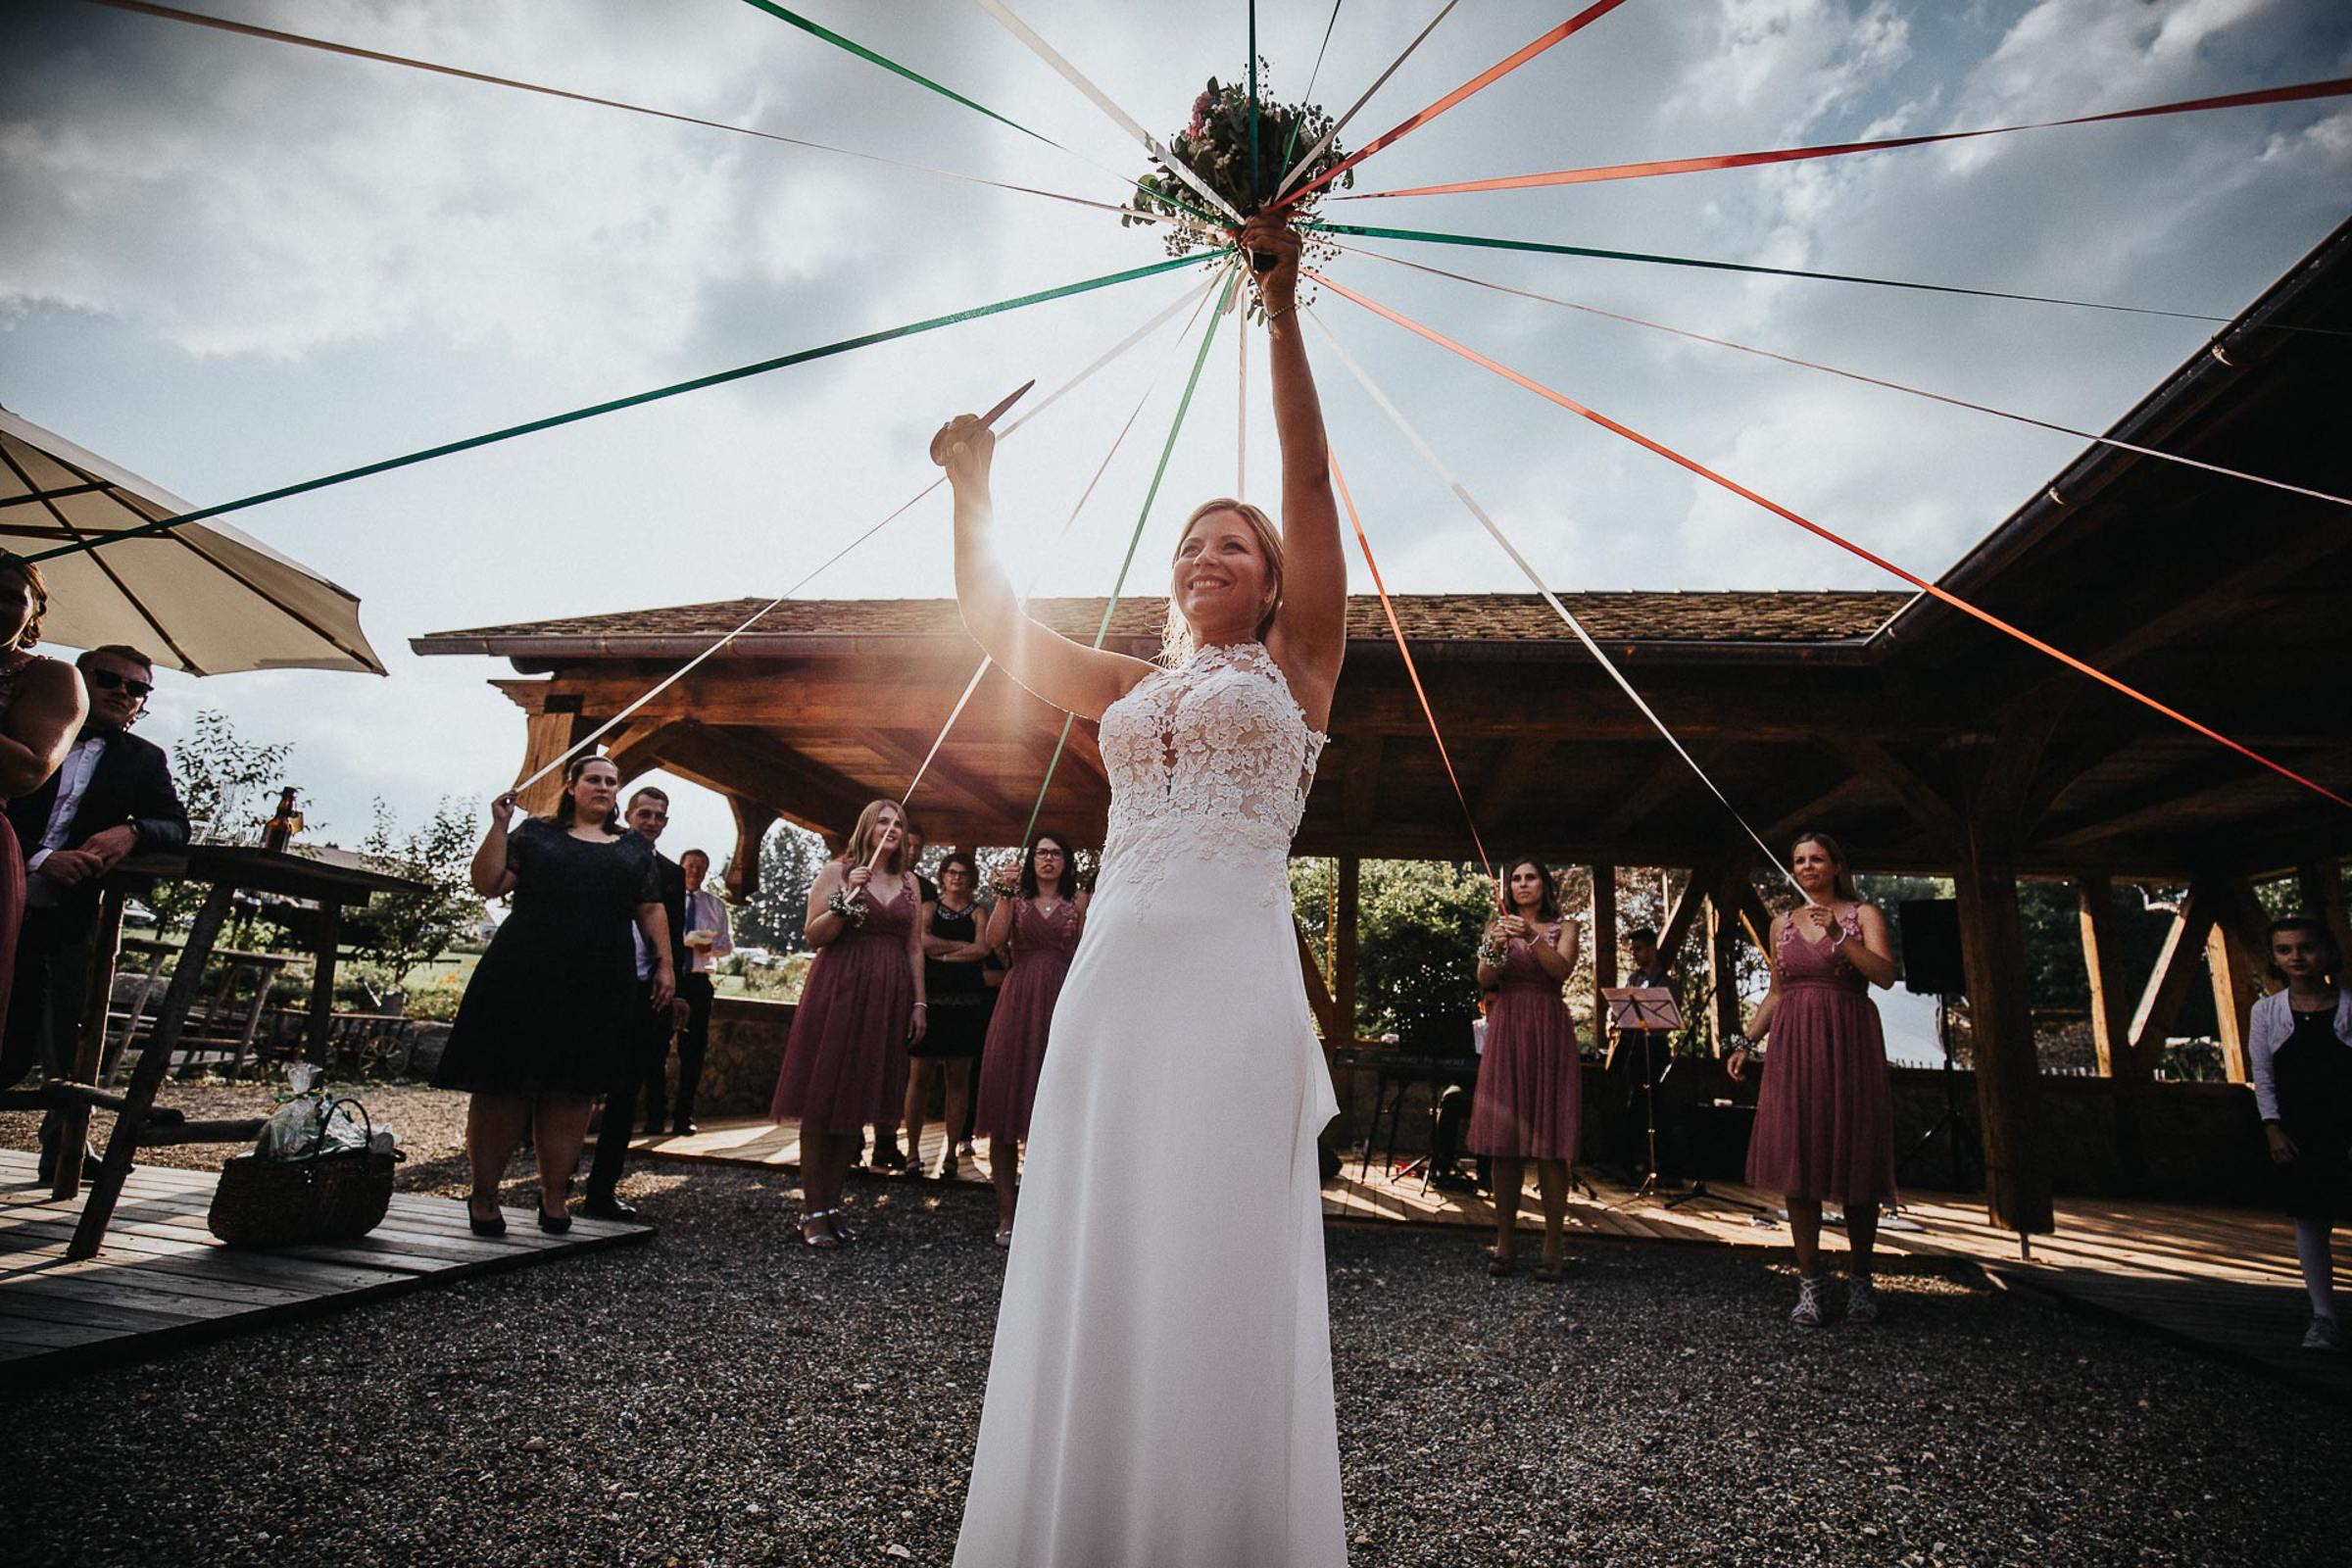 bride getting ready to toss bouquet- photo by FineArt Weddings | Photography